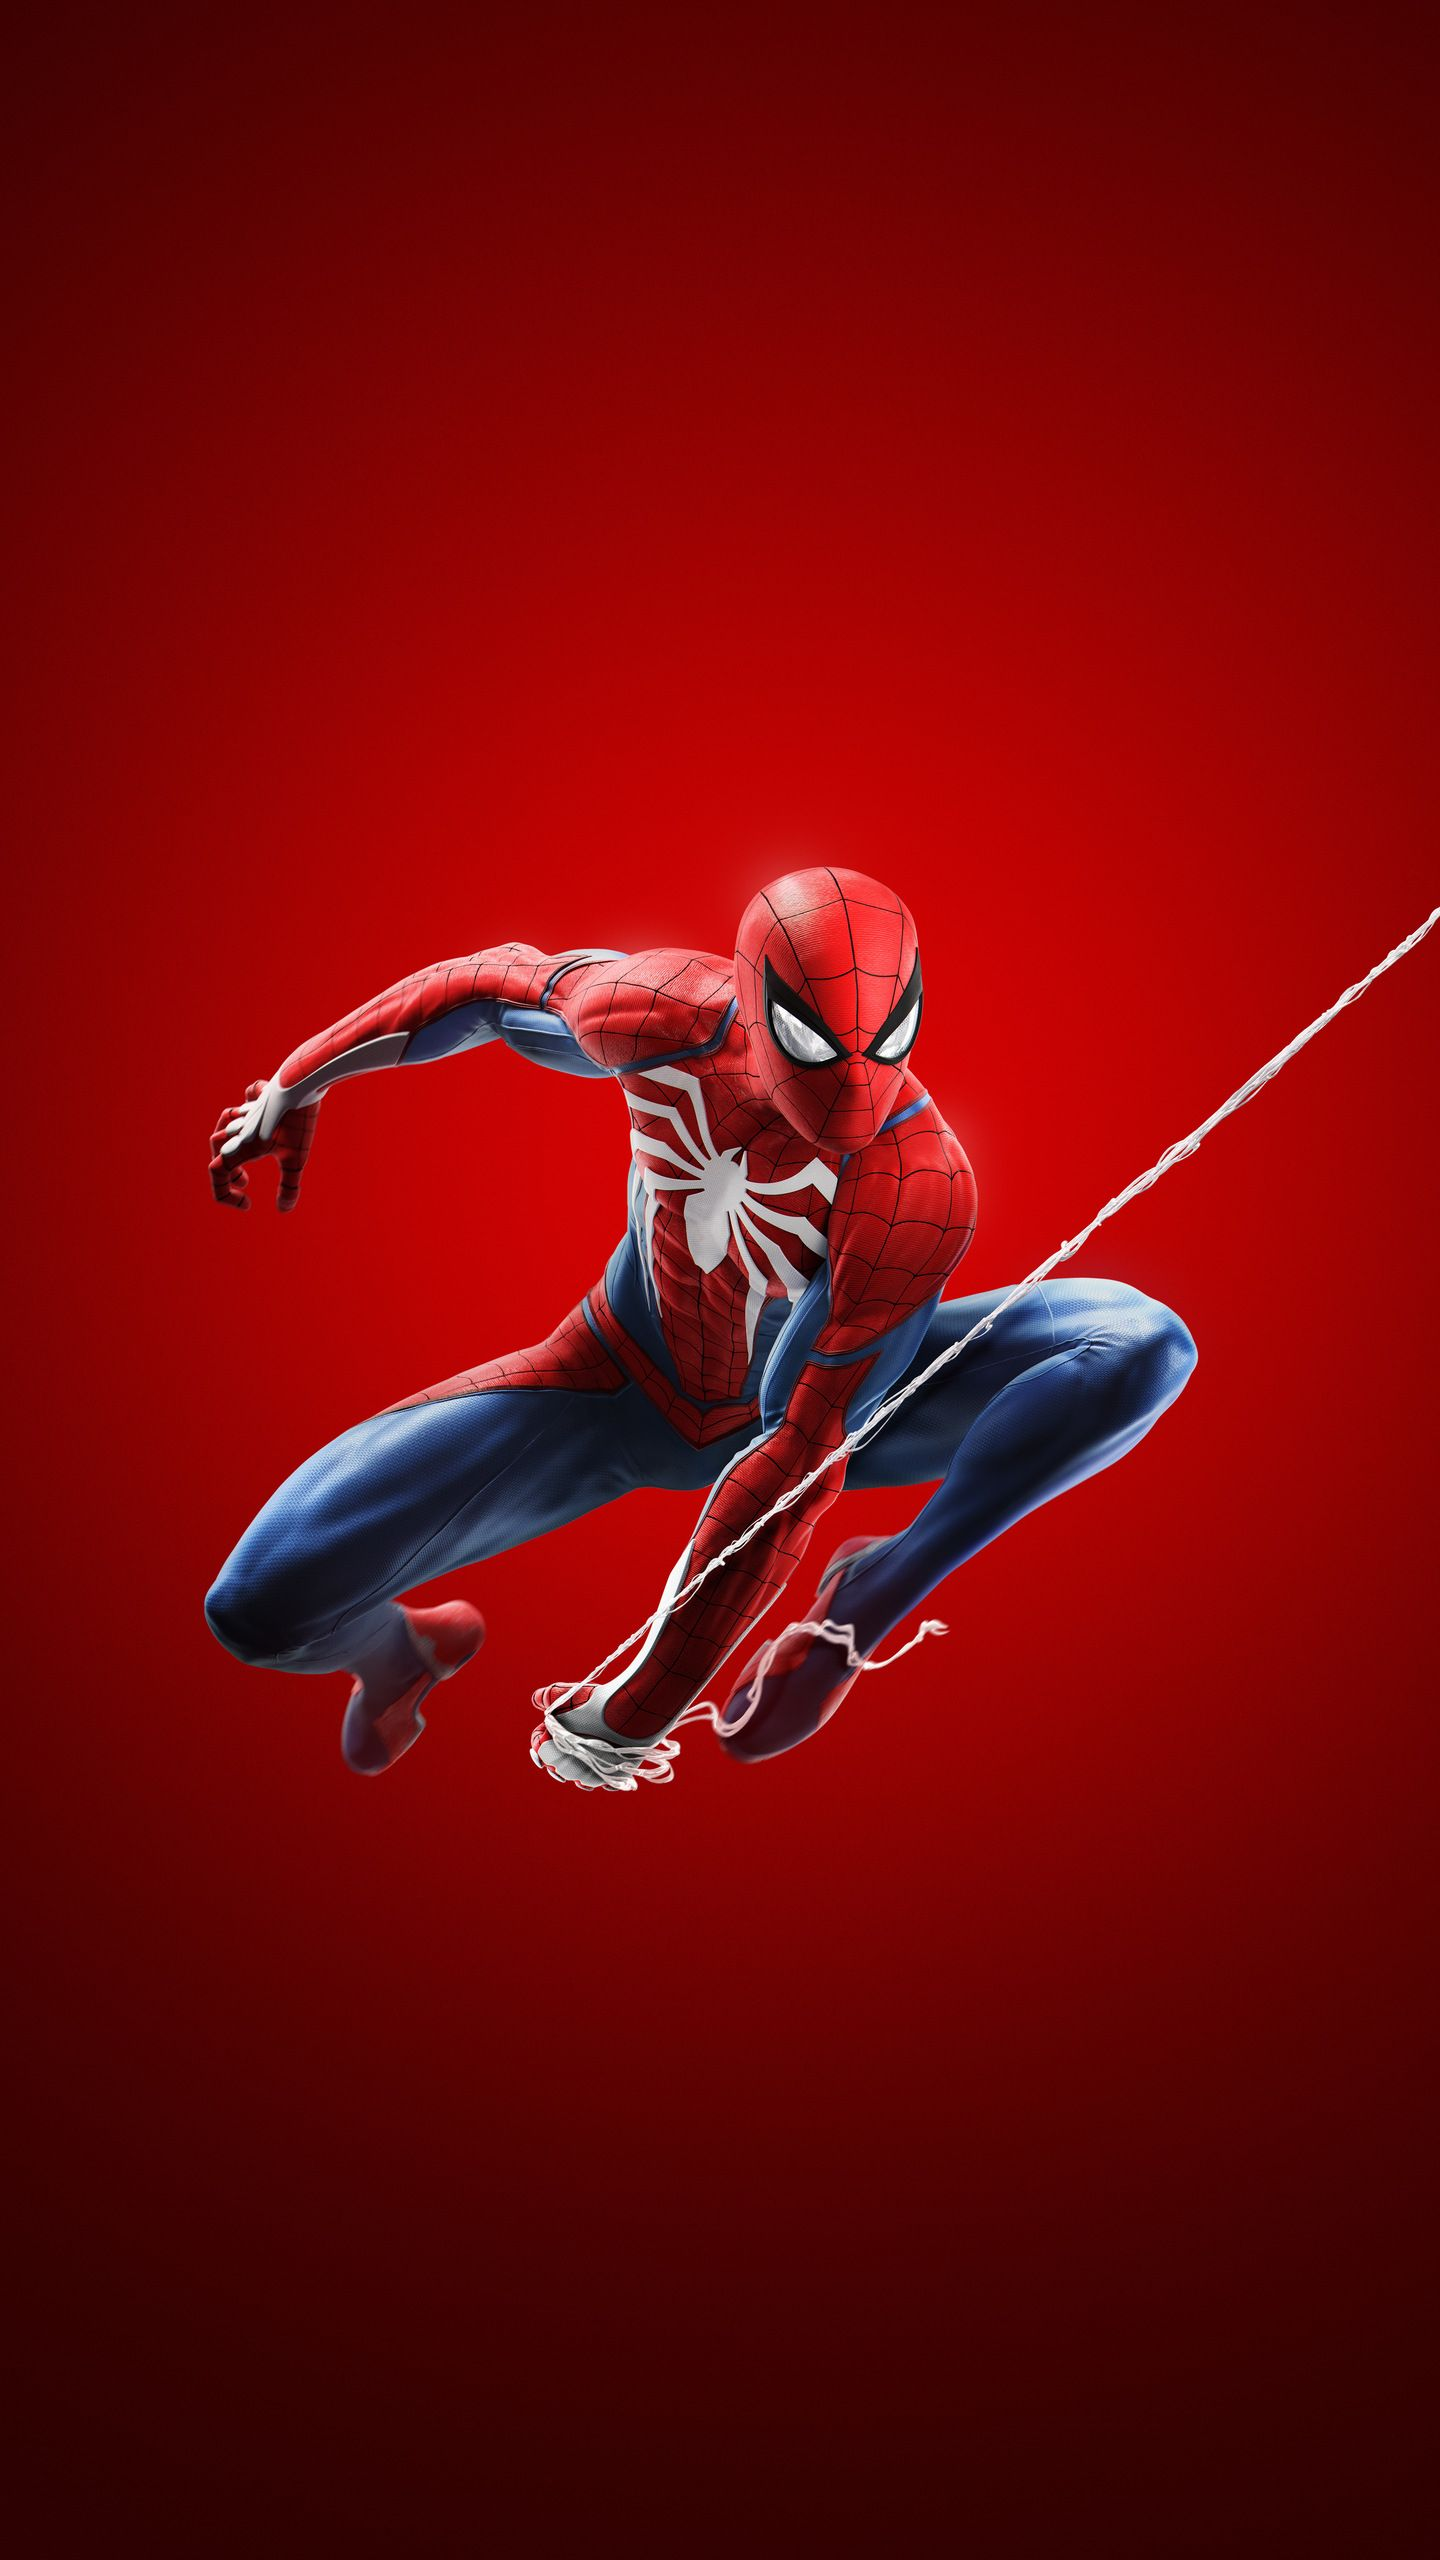 Buy Marvel S Spider Man Playstation 4 By Sony Top Offers In The United States Of America Peter Parker Spid Spiderman Ps4 Spiderman Ps4 Wallpaper Spiderman